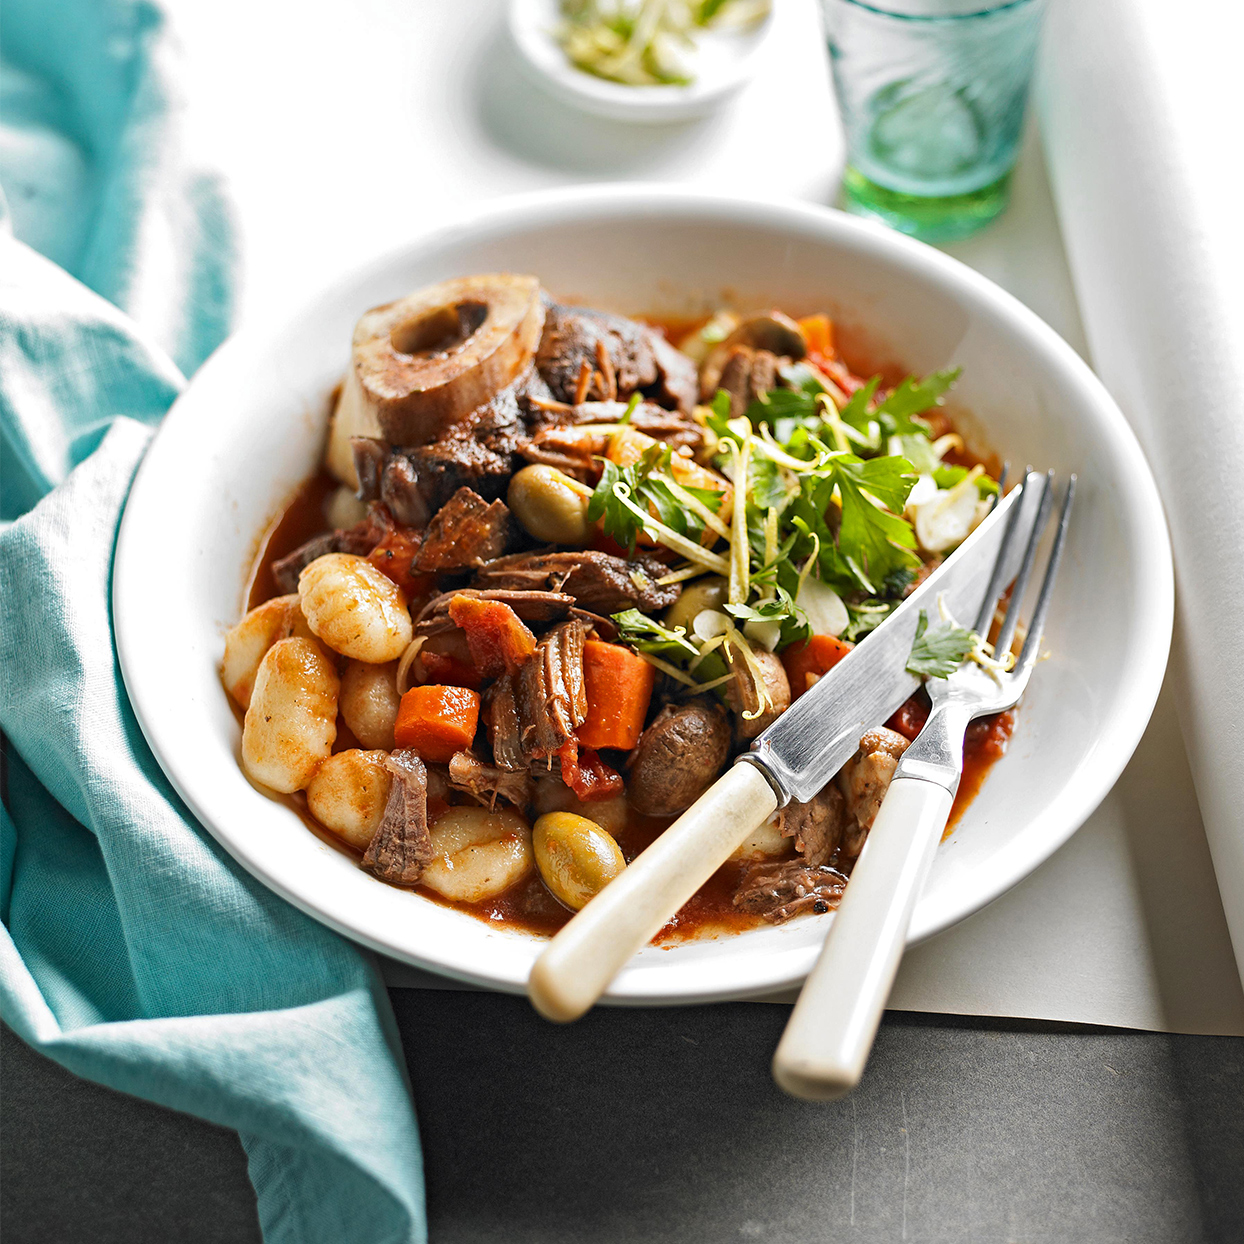 Braised Beef Shanks with Mushrooms and Olives